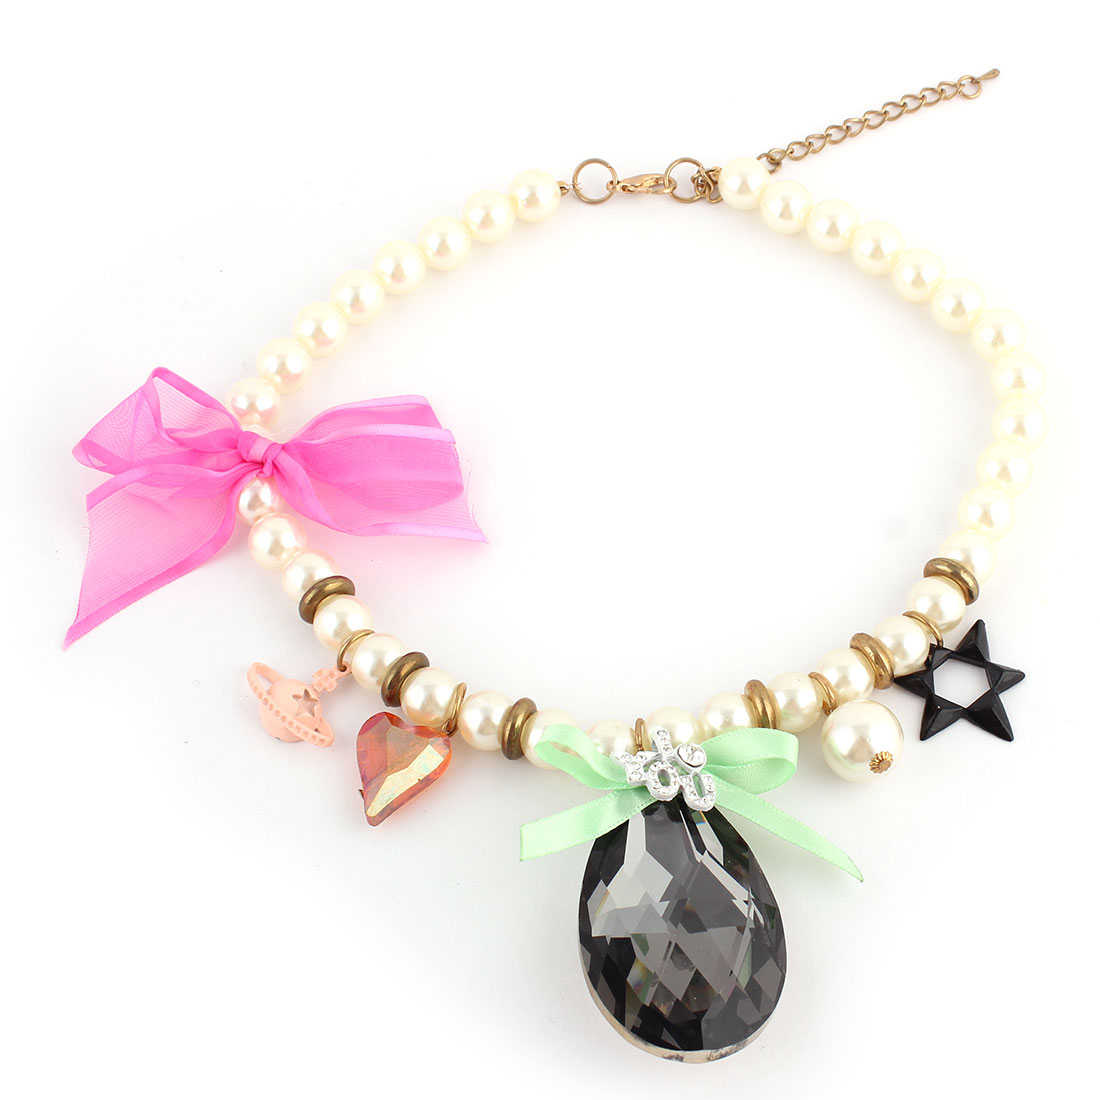 Water-drop Shape Pendant Ring Decor Lobster Buckle Chain Imitation Pearl Necklace